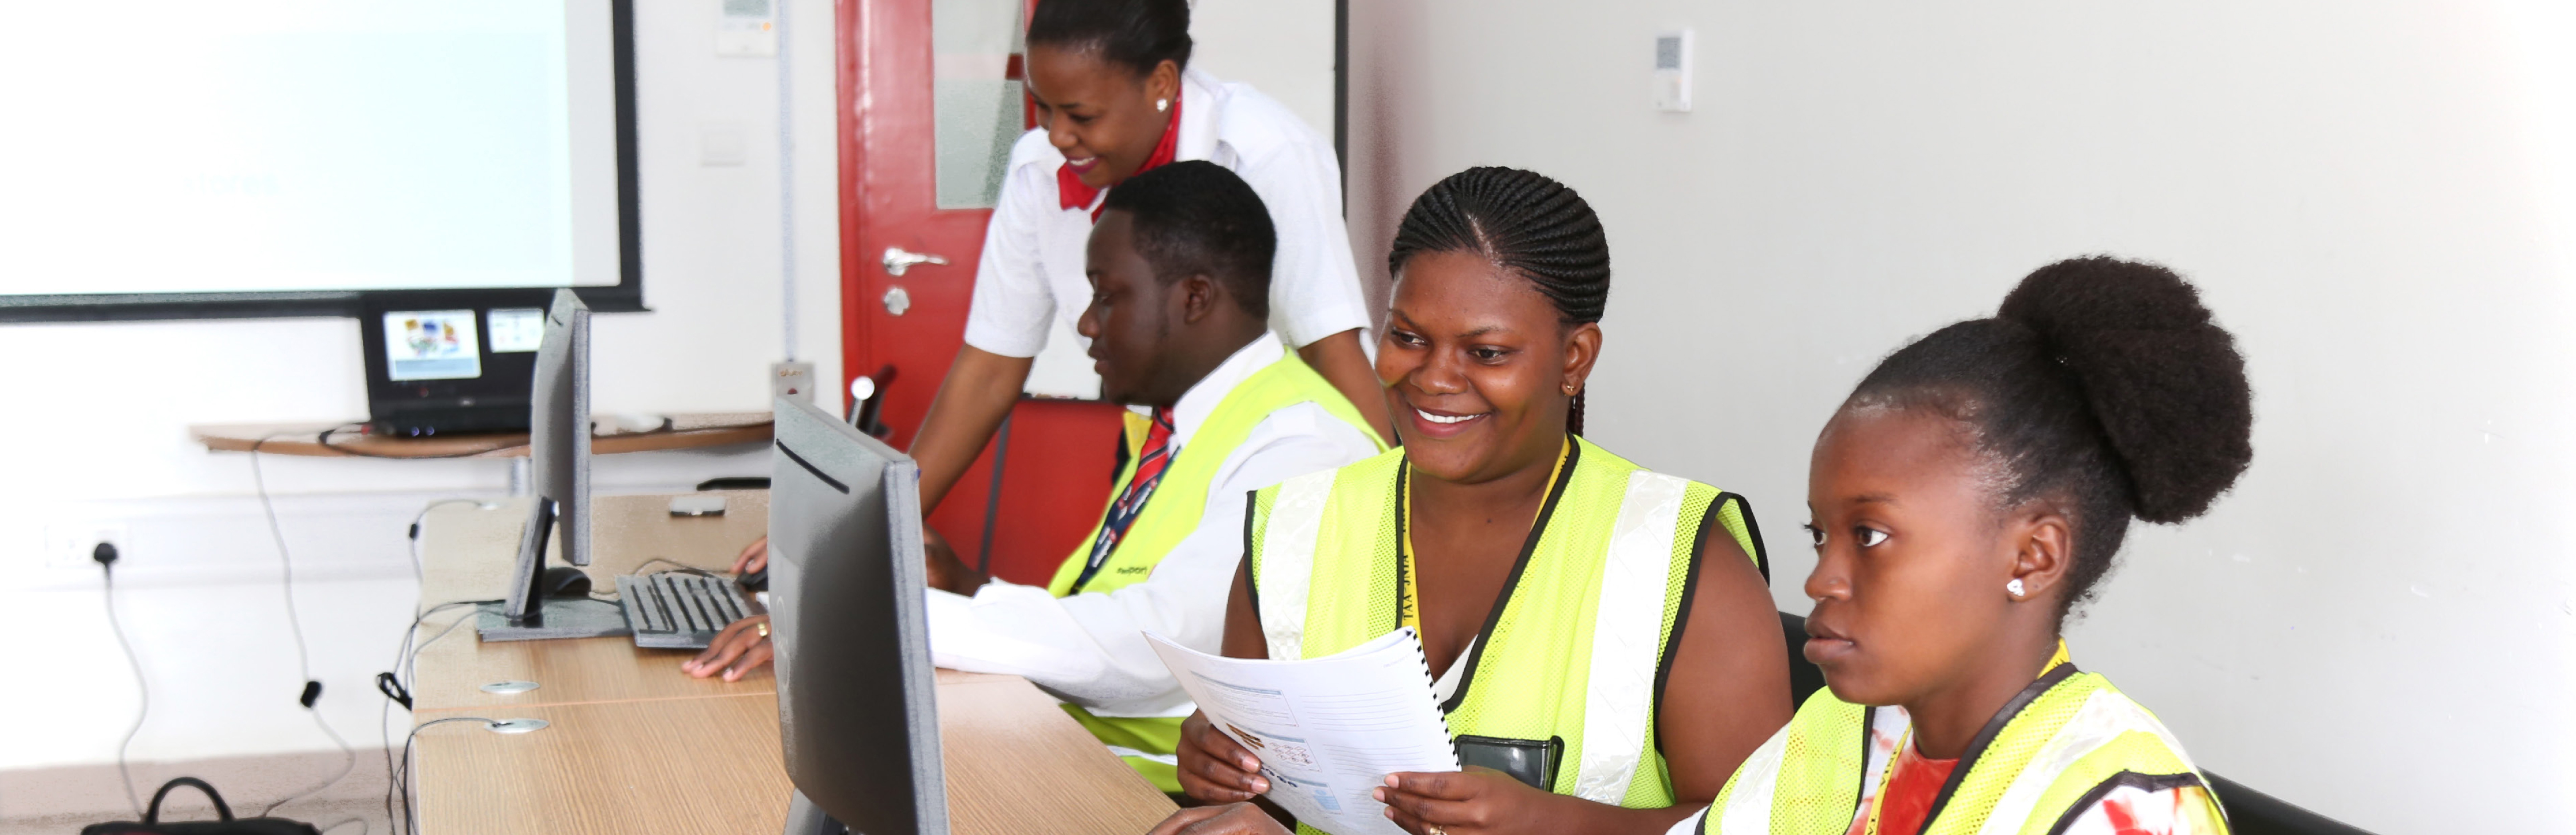 TRAINING-SP002 Tanzania Pport Application Form on